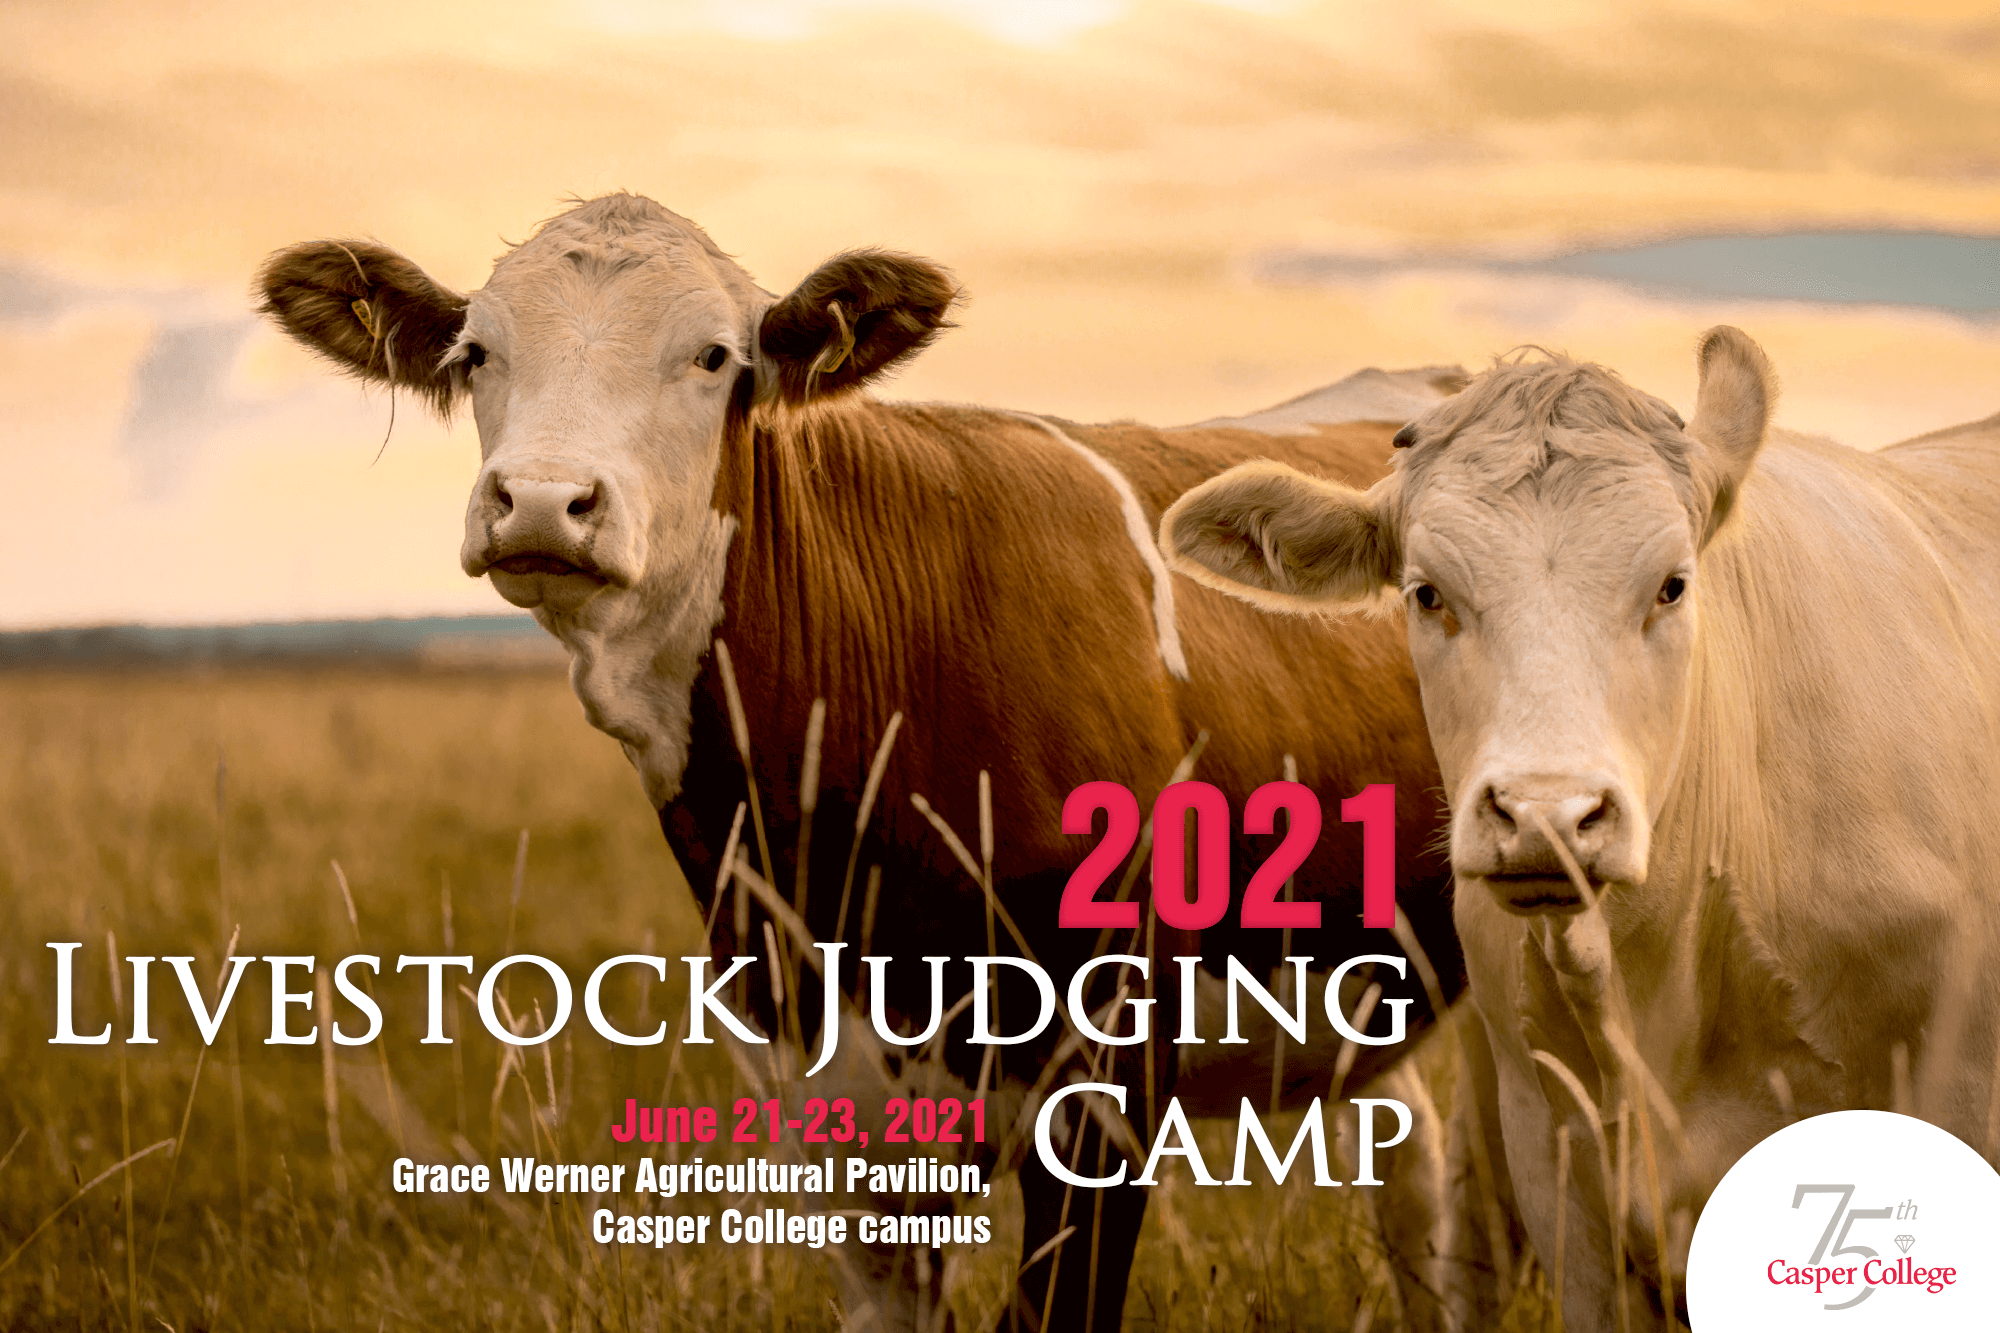 """Image of two cows with the words """"Livestock Judging Camp."""""""